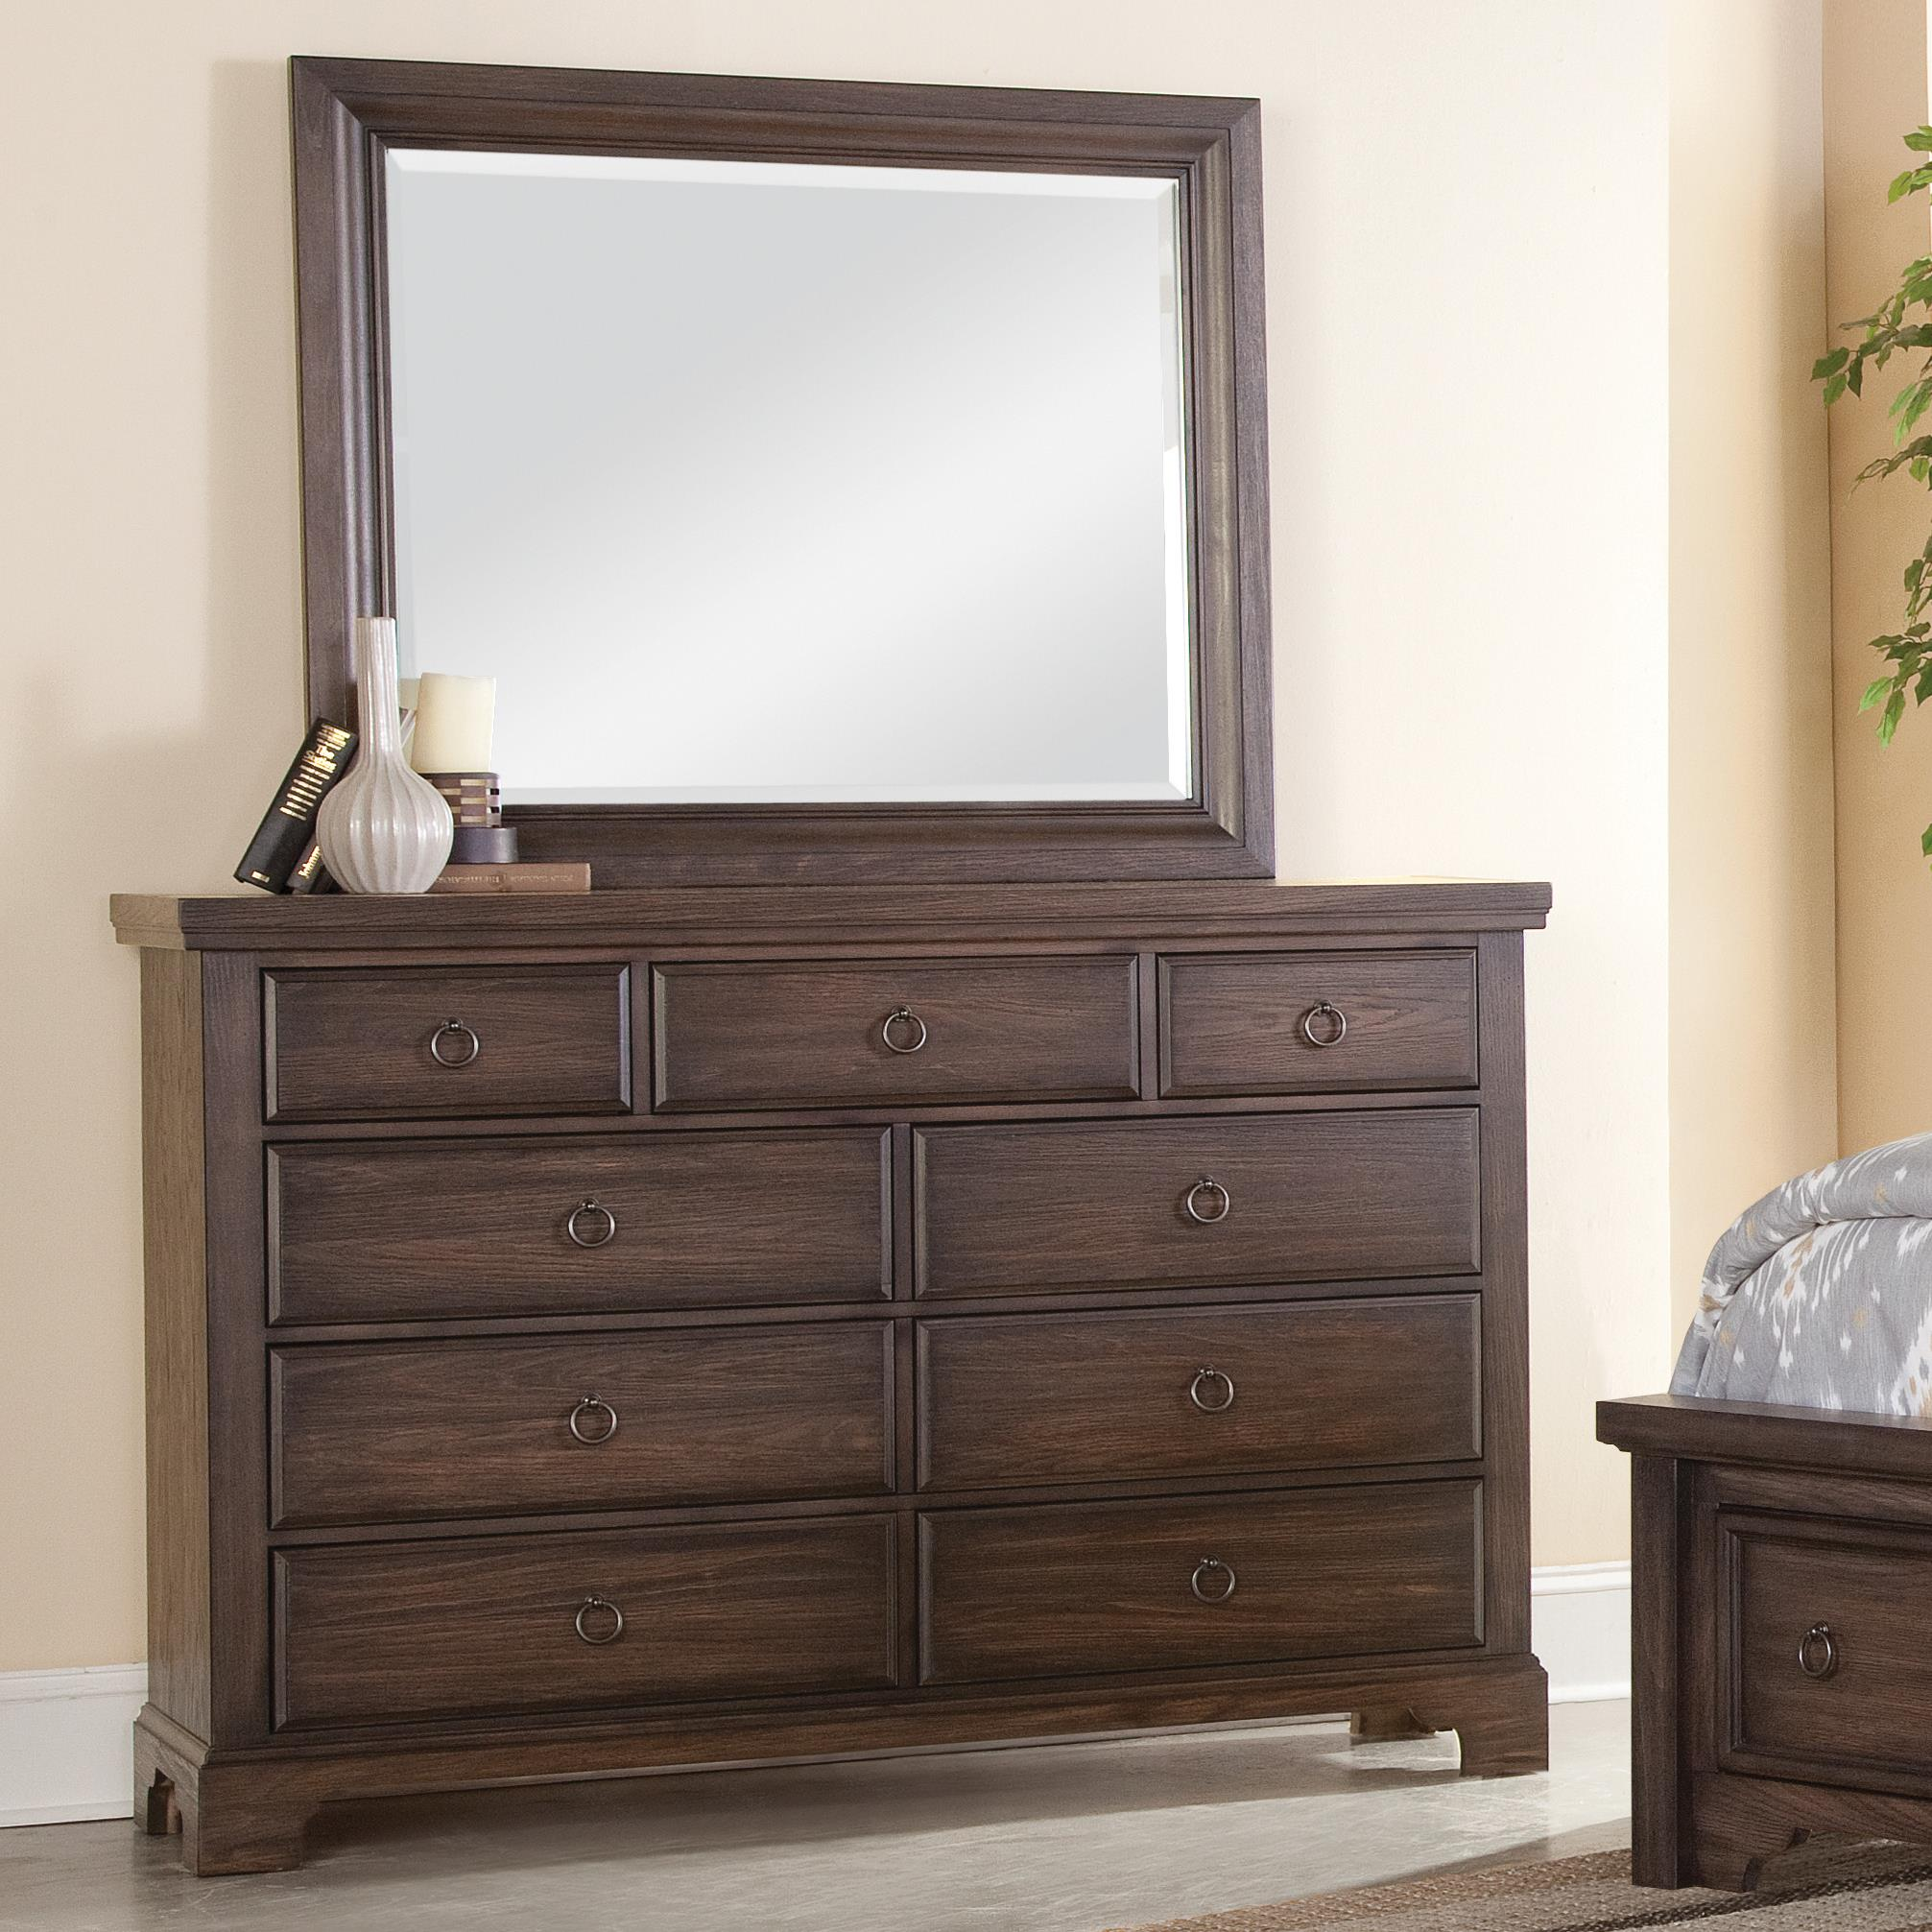 Vaughan Bassett Whiskey Barrel Chesser - 9 Drawers & Landscape Mirror - Item Number: 816-003+446